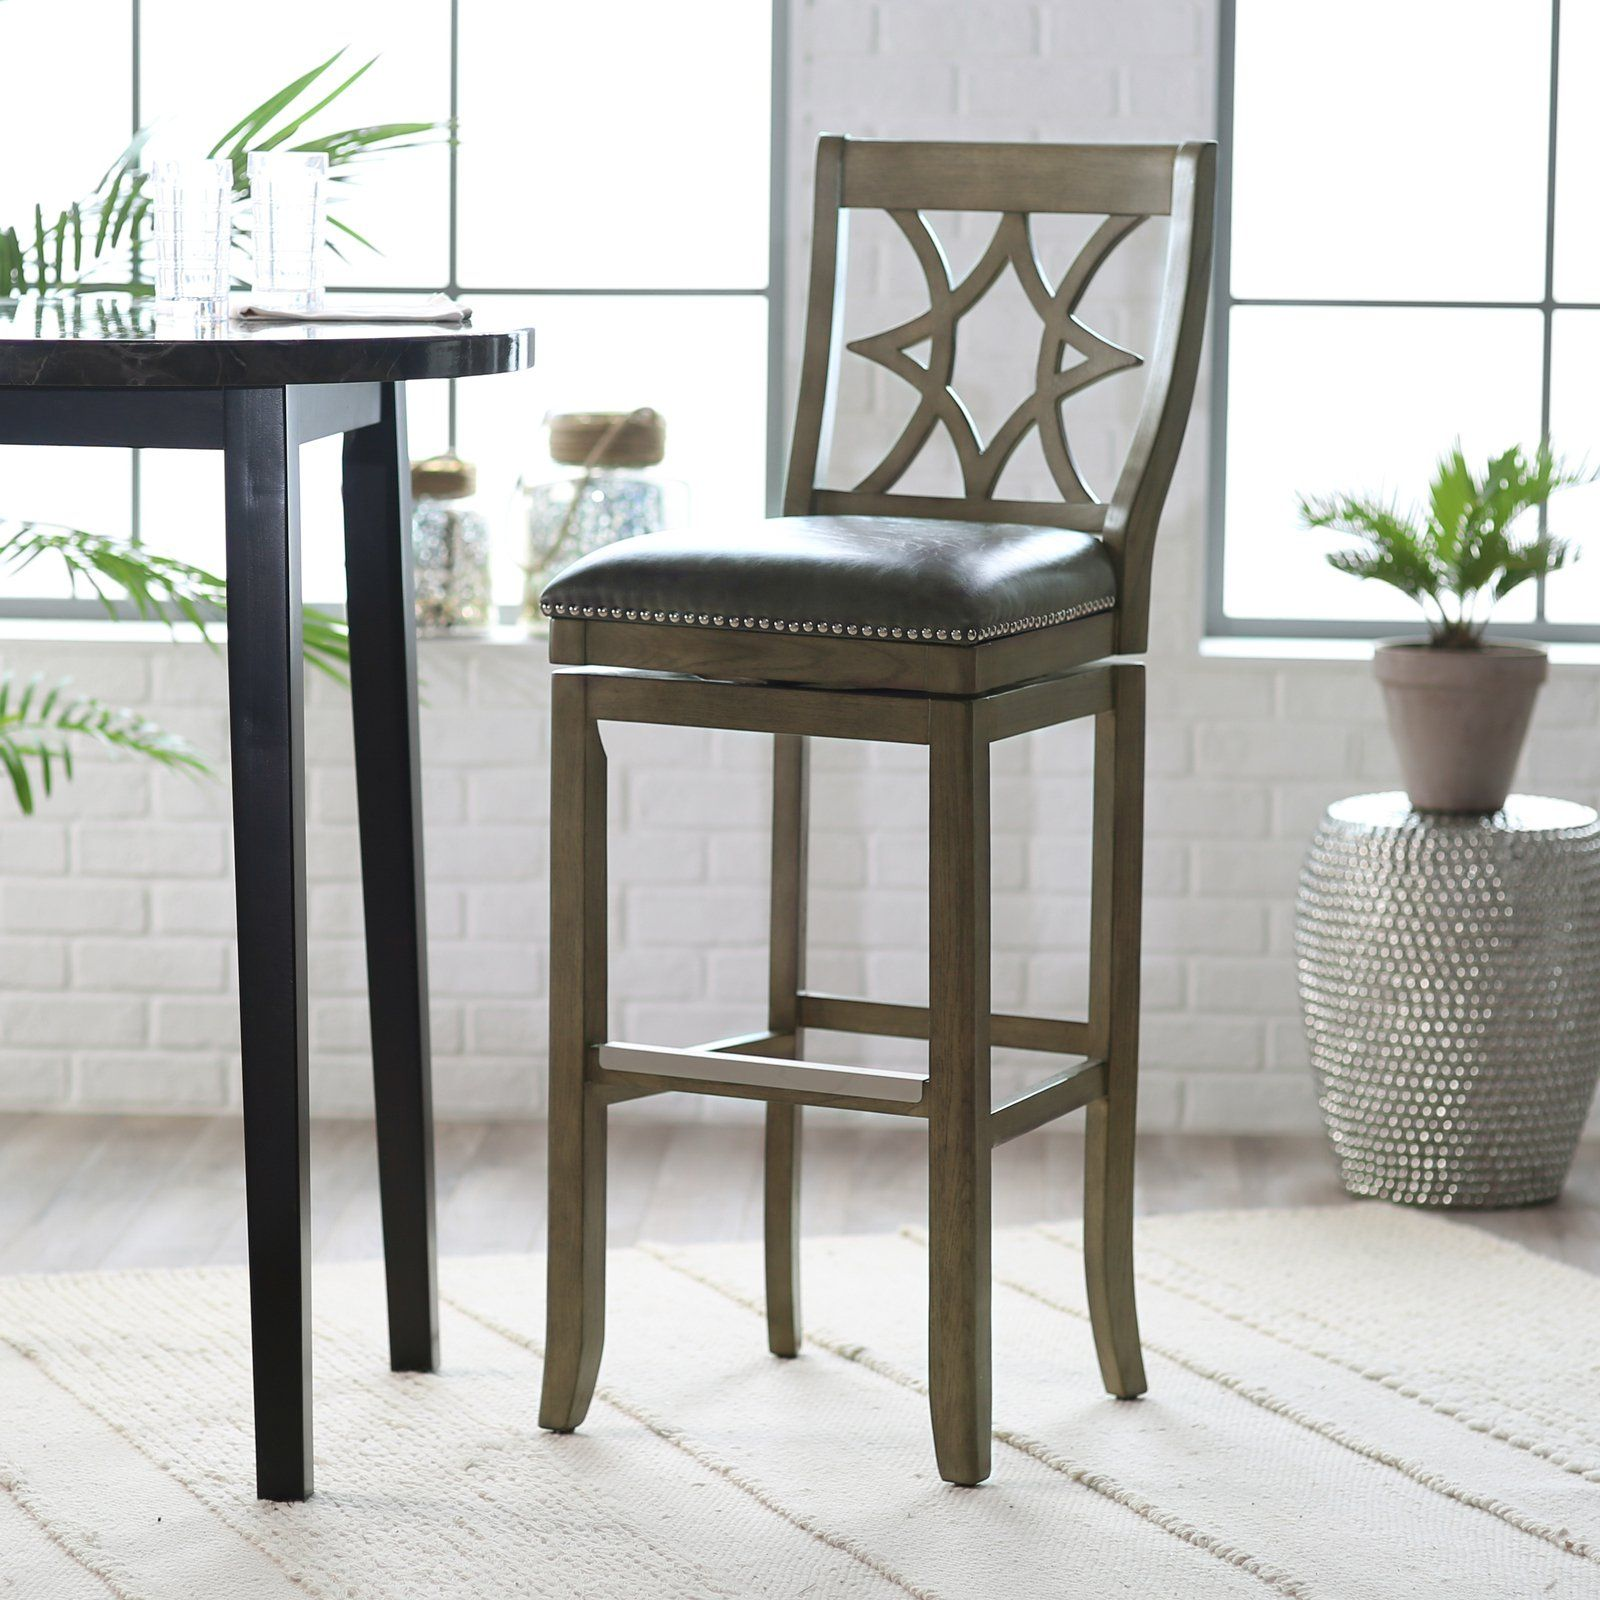 Belham living oliver square seat swivel extra tall bar stool ahb4015 34